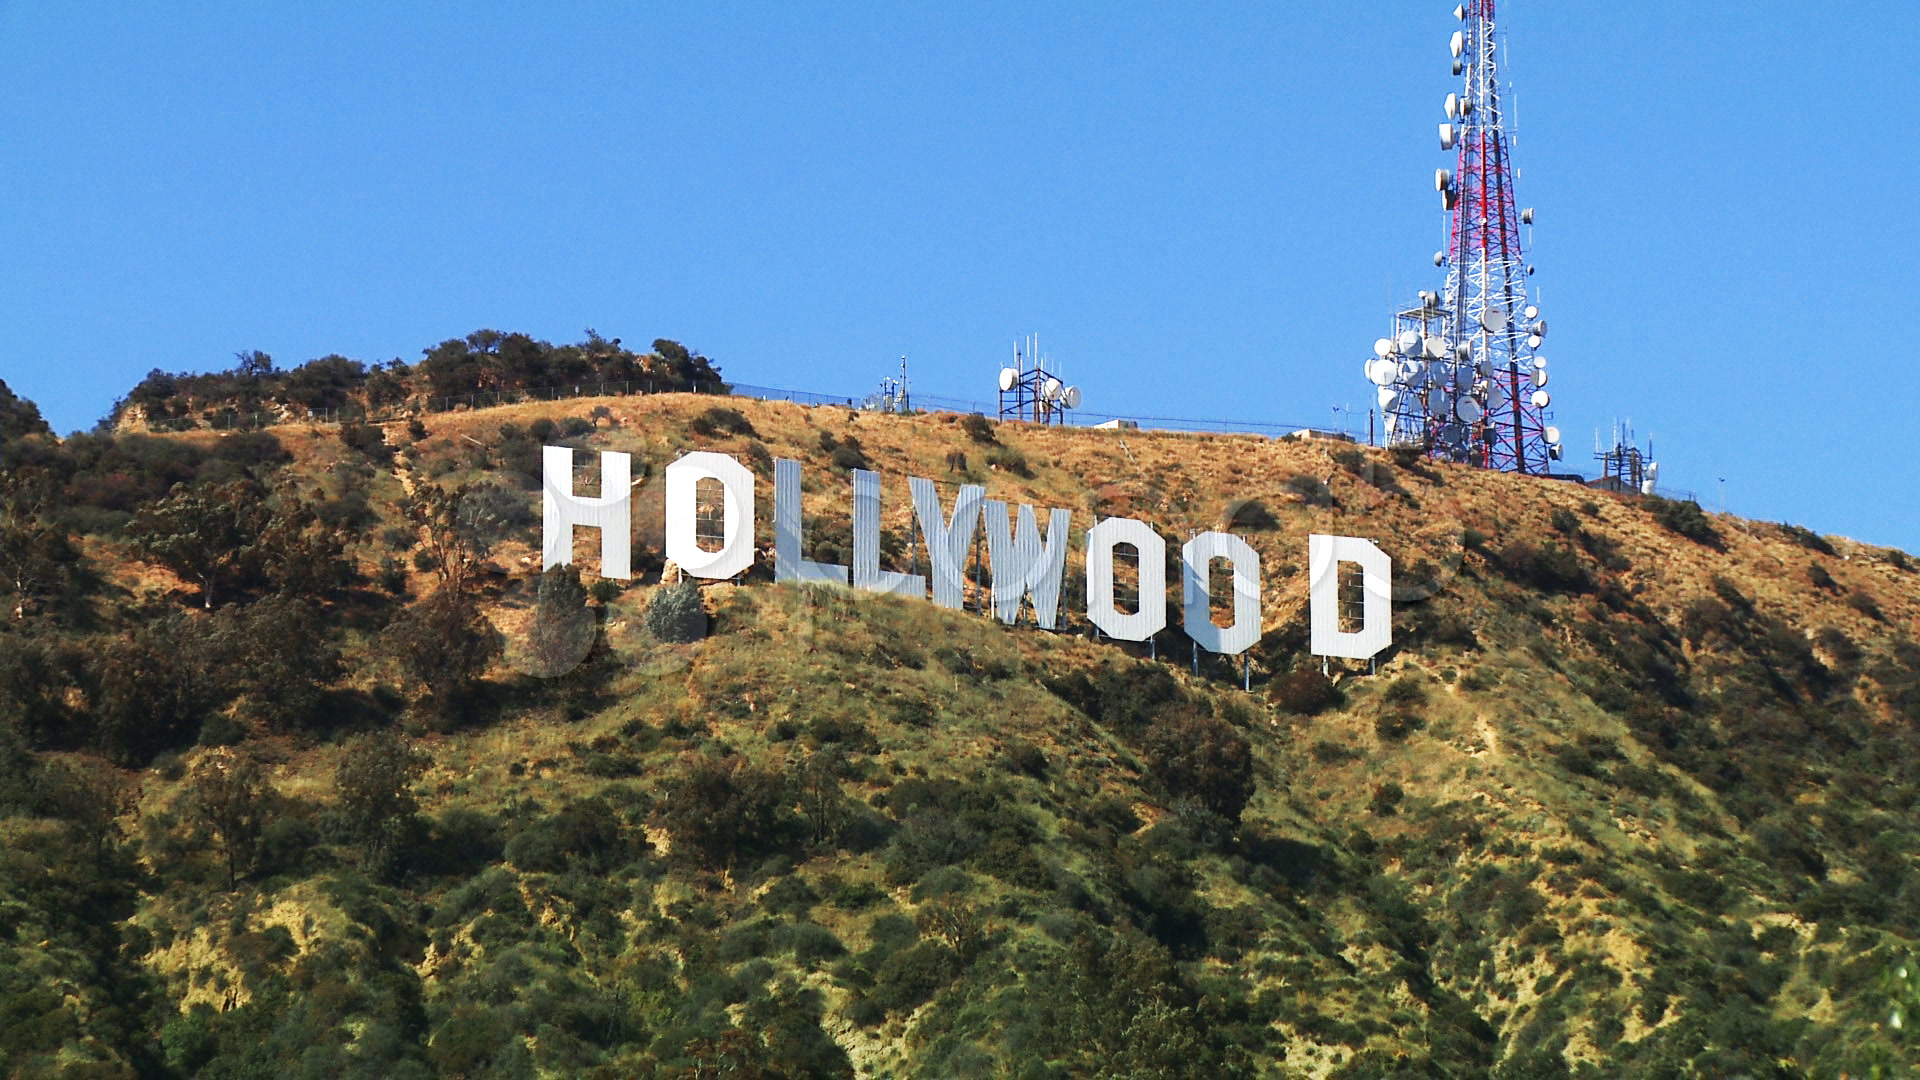 Hollywood Sign At Sunset Wallpaper Hollywood sign zoom in 1920x1080